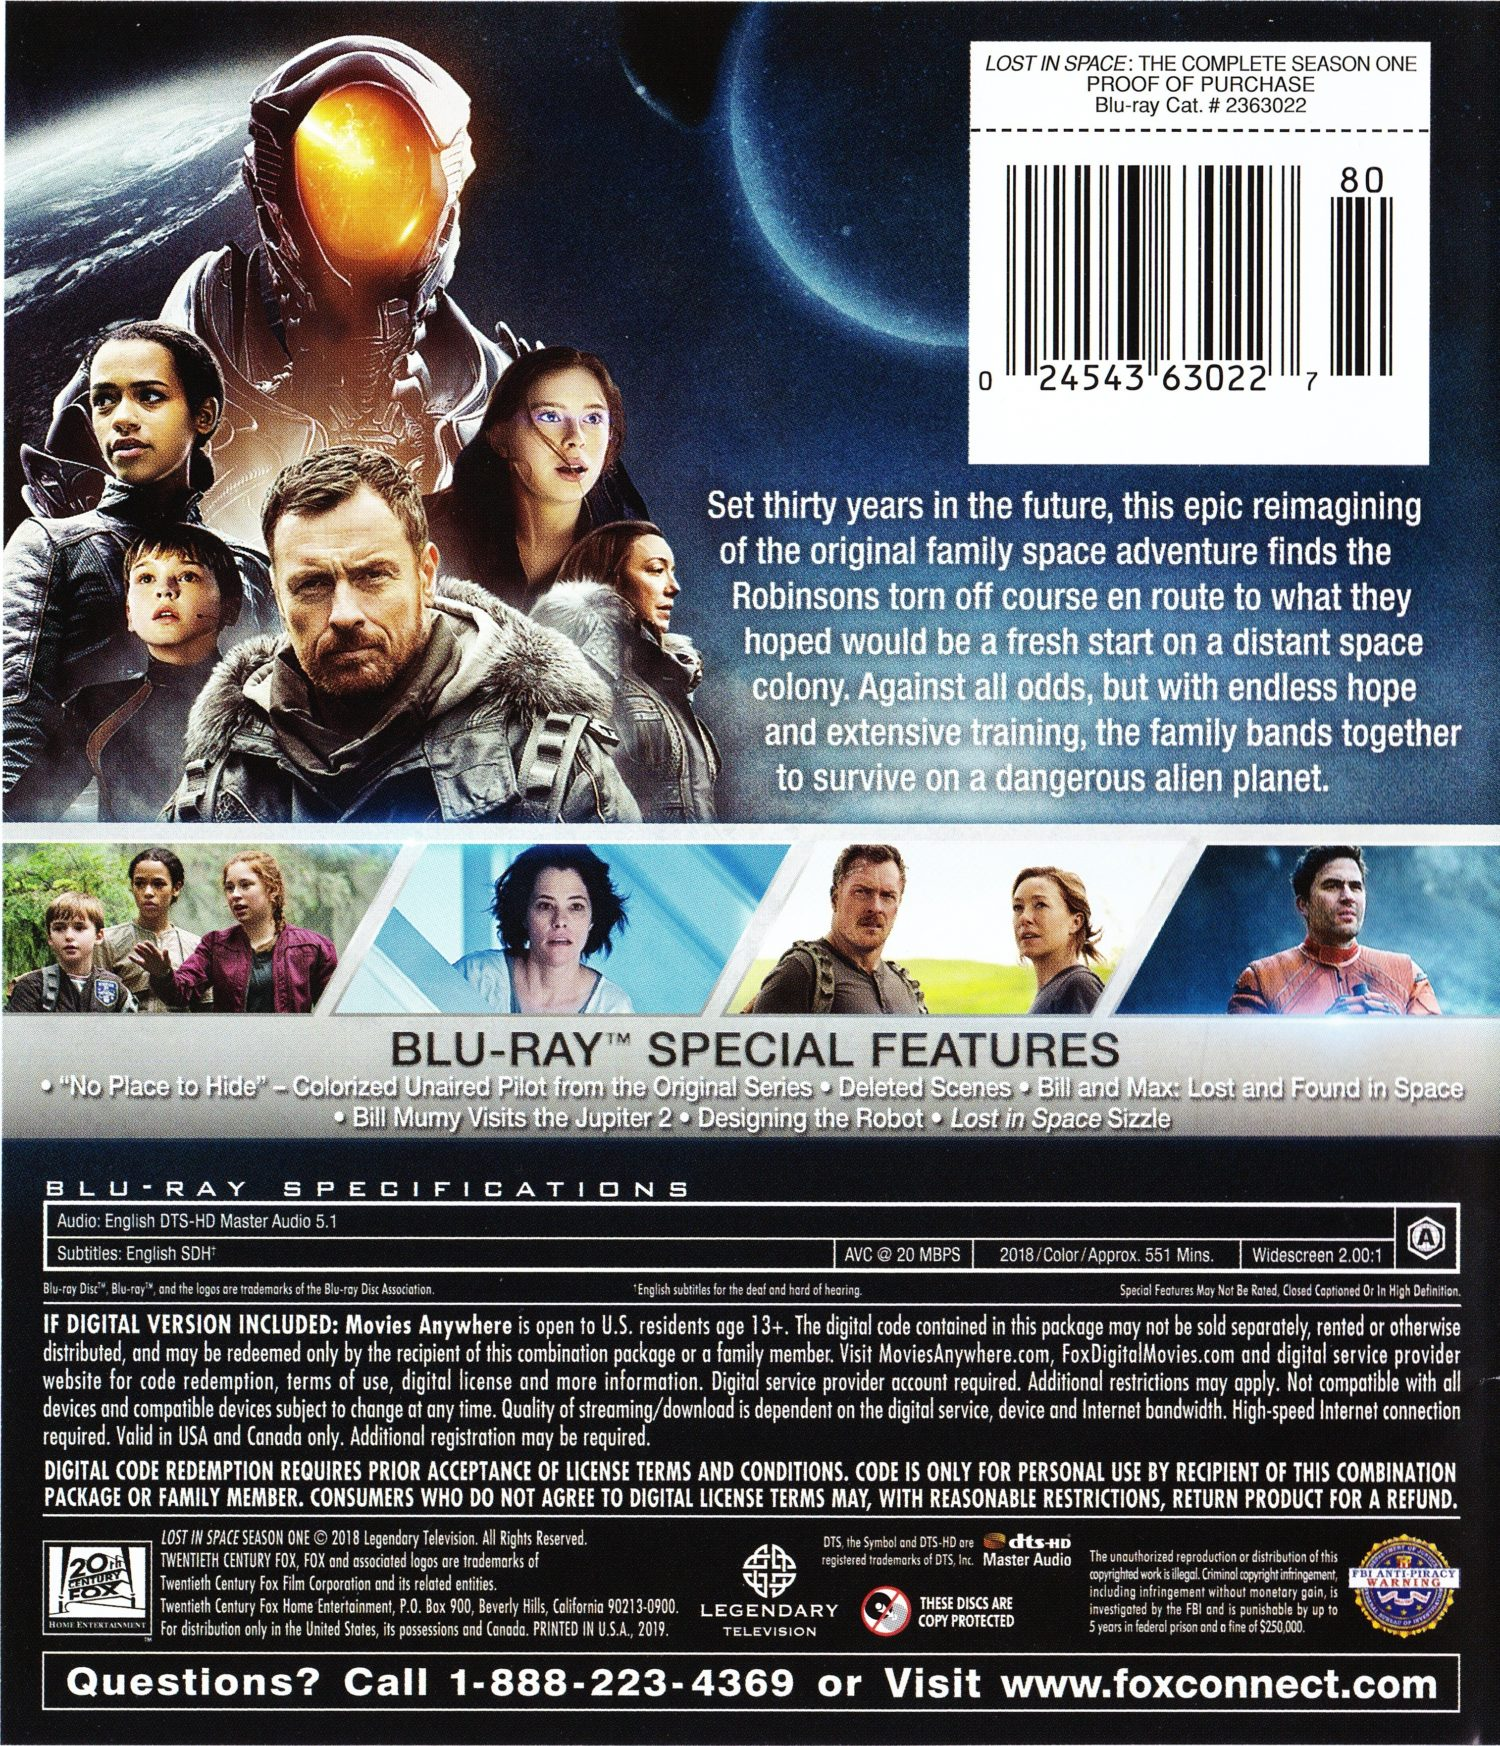 Blu-ray Review: LOST IN SPACE: THE COMPLETE FIRST SEASON